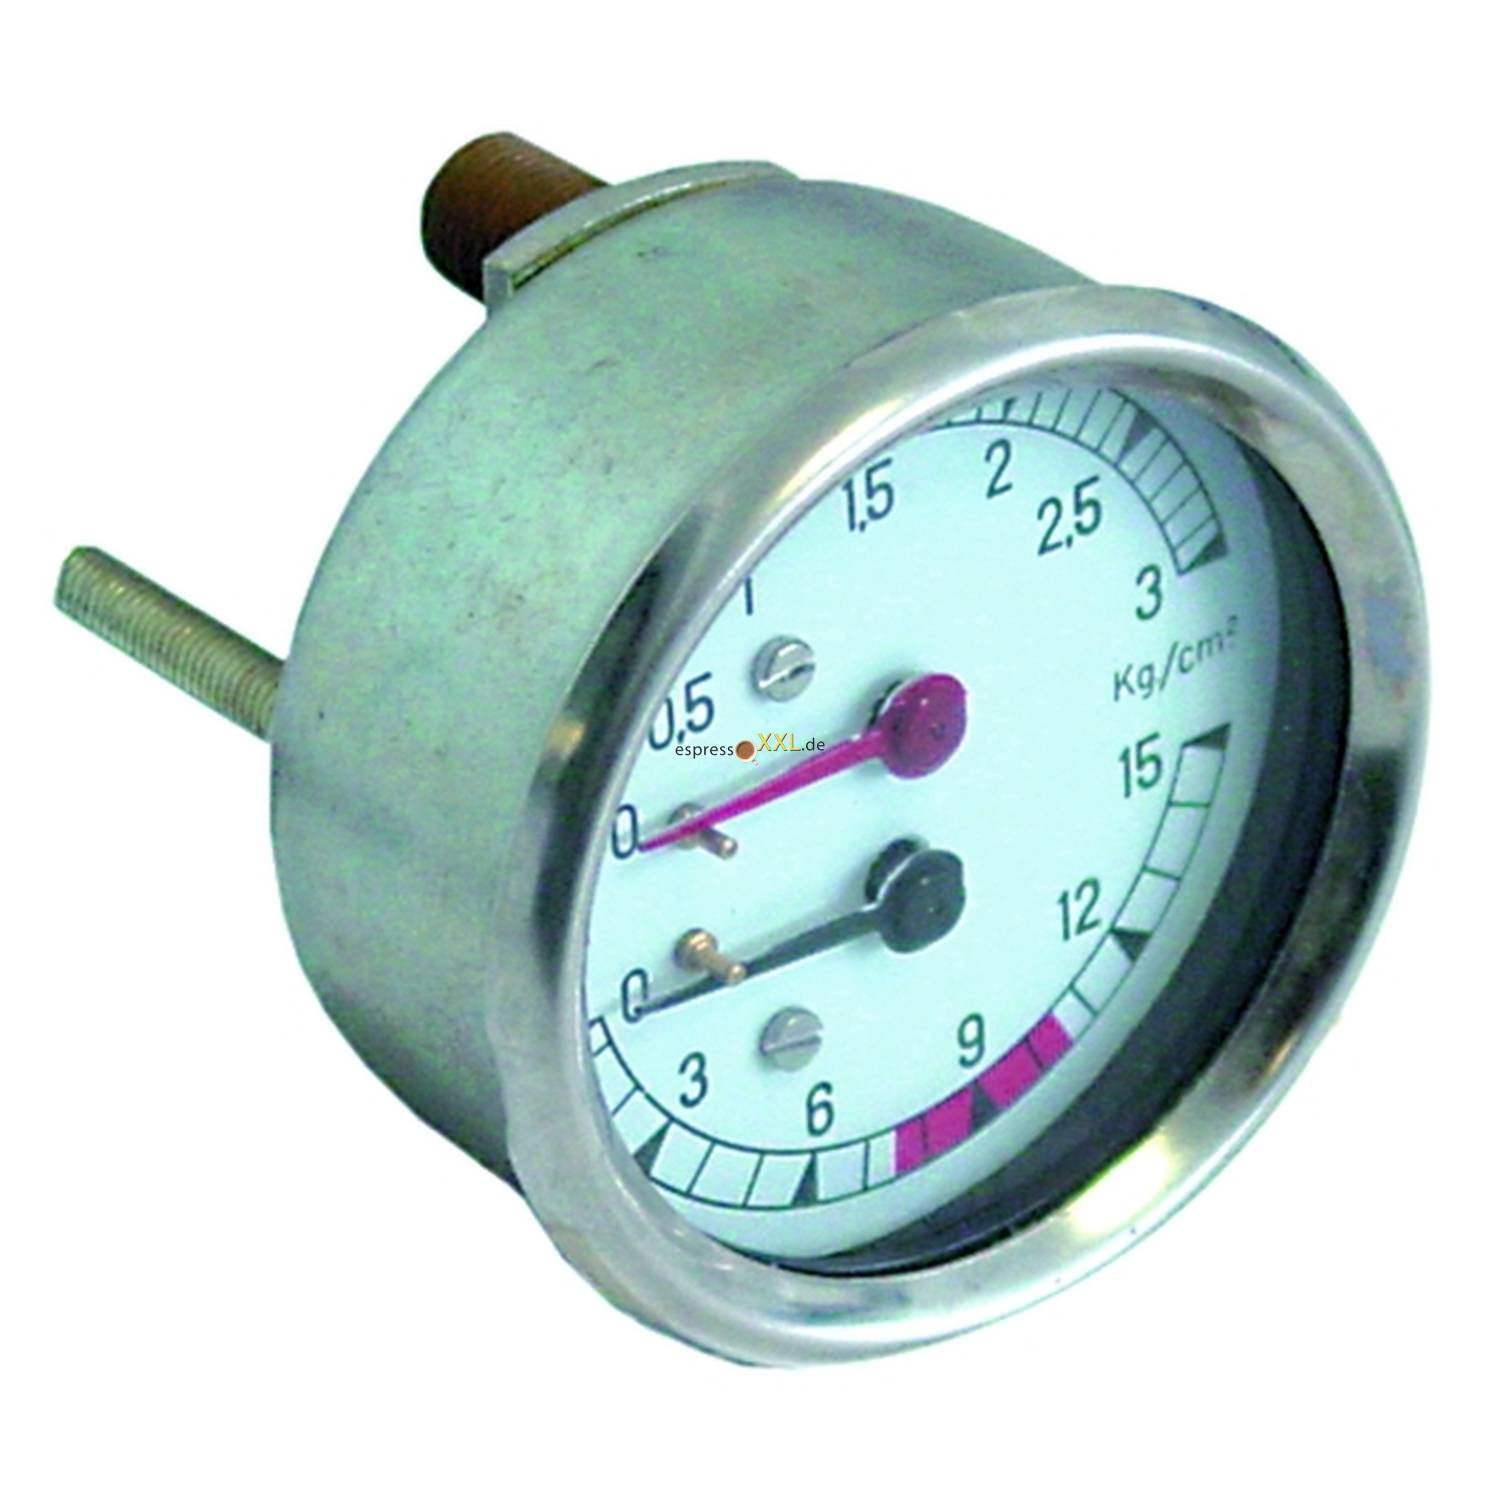 MANOMETER DOPPELSKALA, 67mm, 1/4 (13,2mm), 3.-15-BAR, SOLENRY